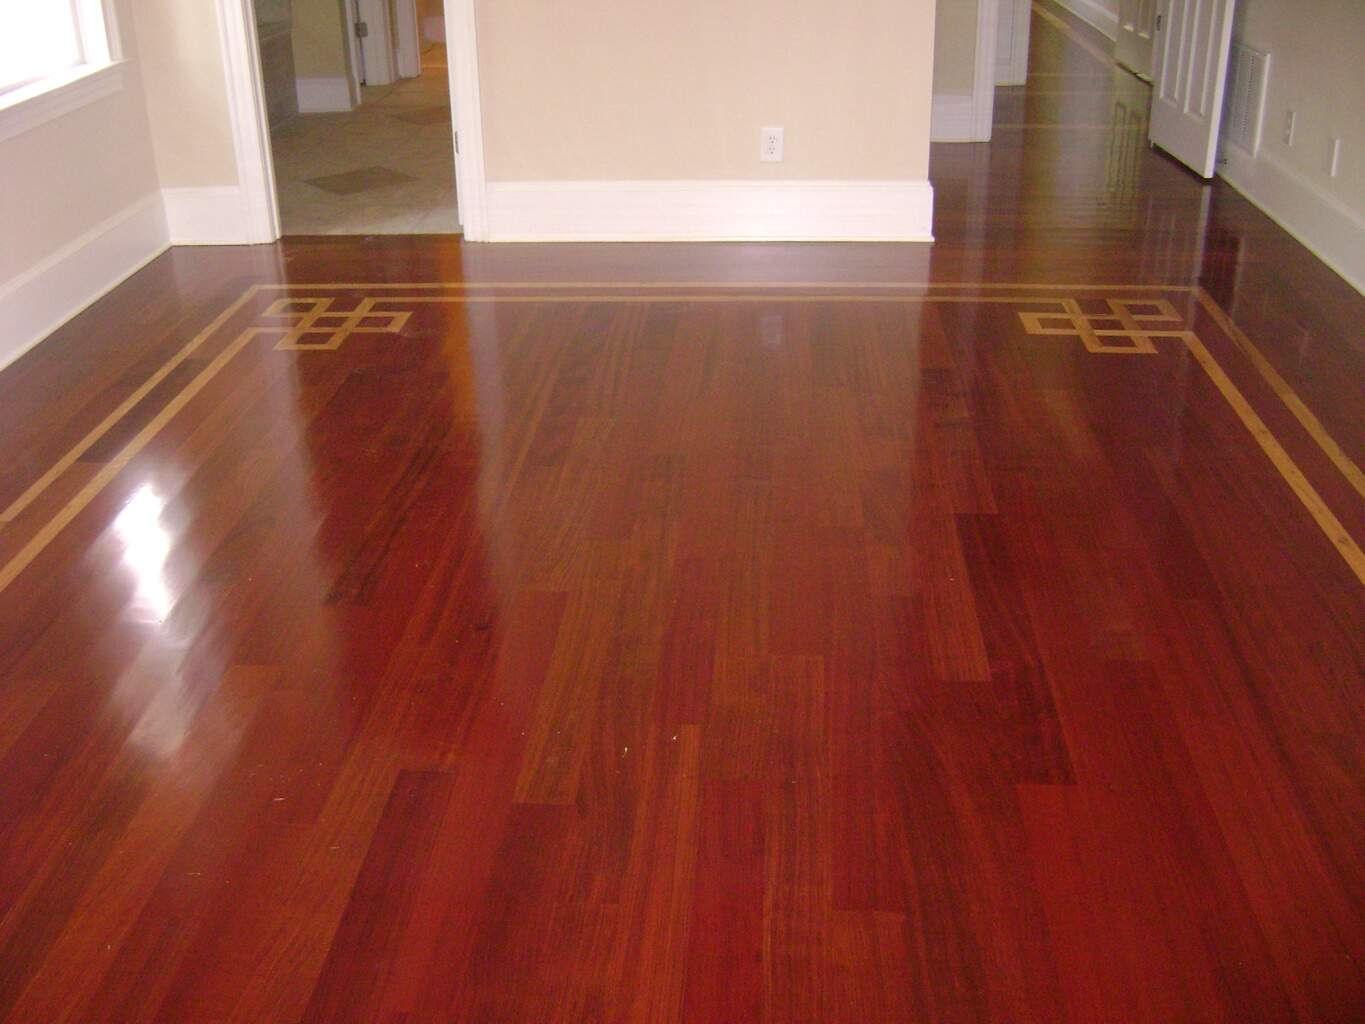 Hardwood Floor Inlays hardwood floor inlay Wood Floor Inlay Long Island Ny Refinish Restore Hardwoods